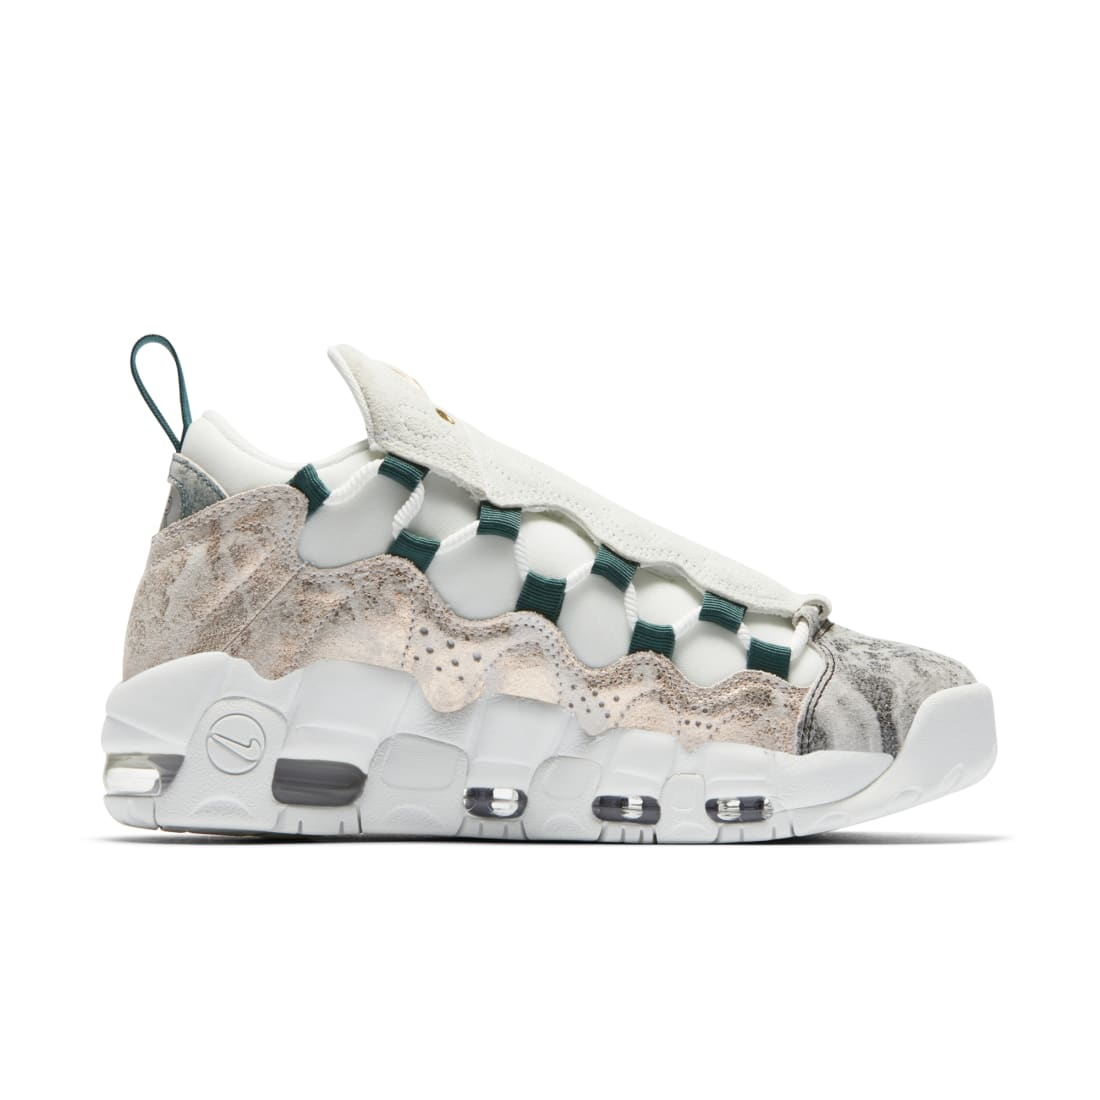 Nike Air More Money LX Marble Shoes